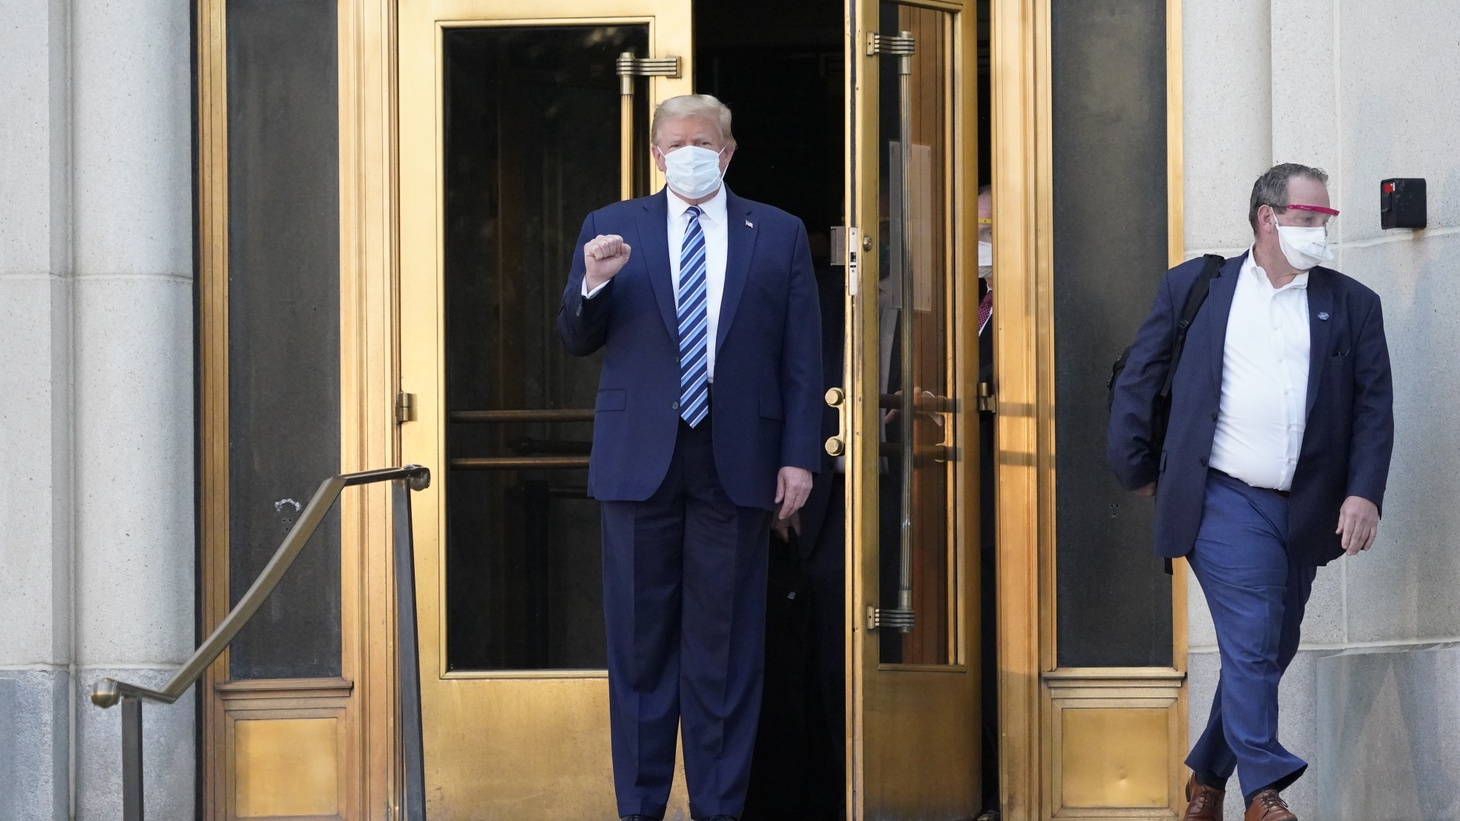 Donald J. Trump, wearing a mask, emerges from the front door of Walter Reed National Military Medical Center to board Marine One for a return trip to the White House after receiving treatment for a COVID-19 infection. October 5, 2020, Bethesda, Maryland.